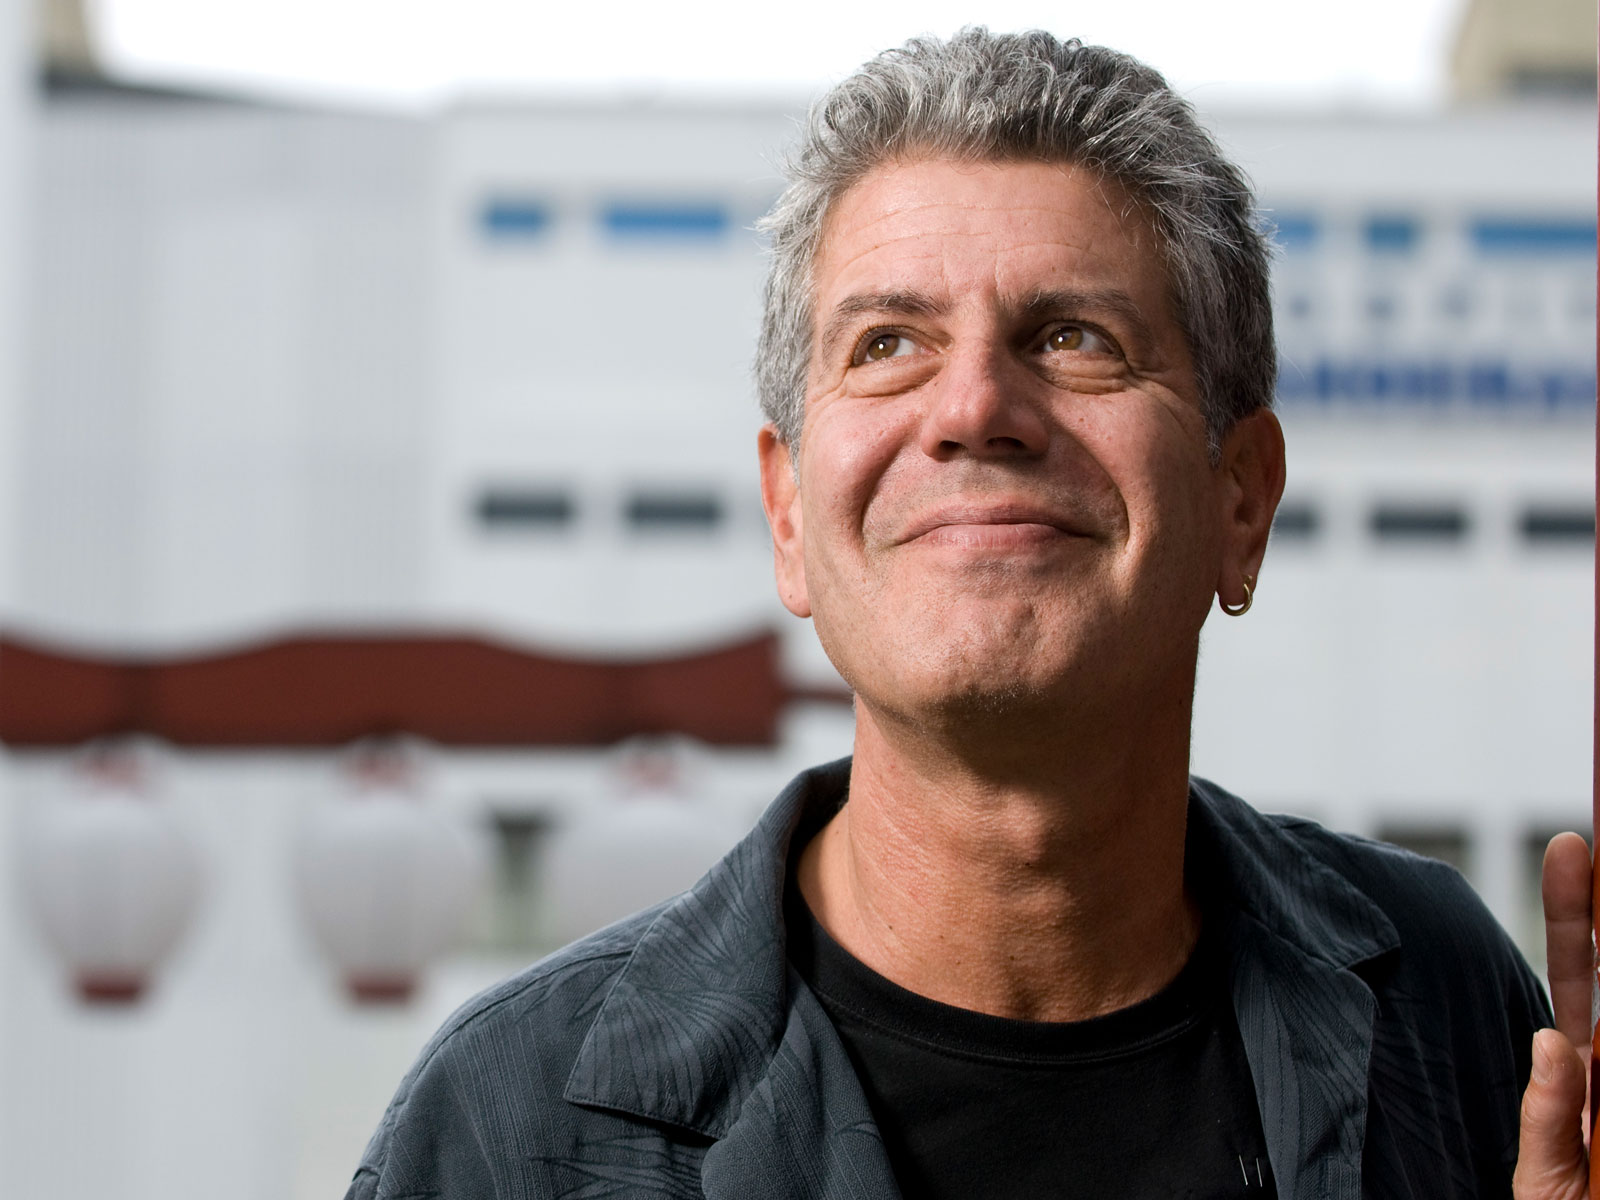 anthony-bourdain-doc-FT-BLOG1019.jpg